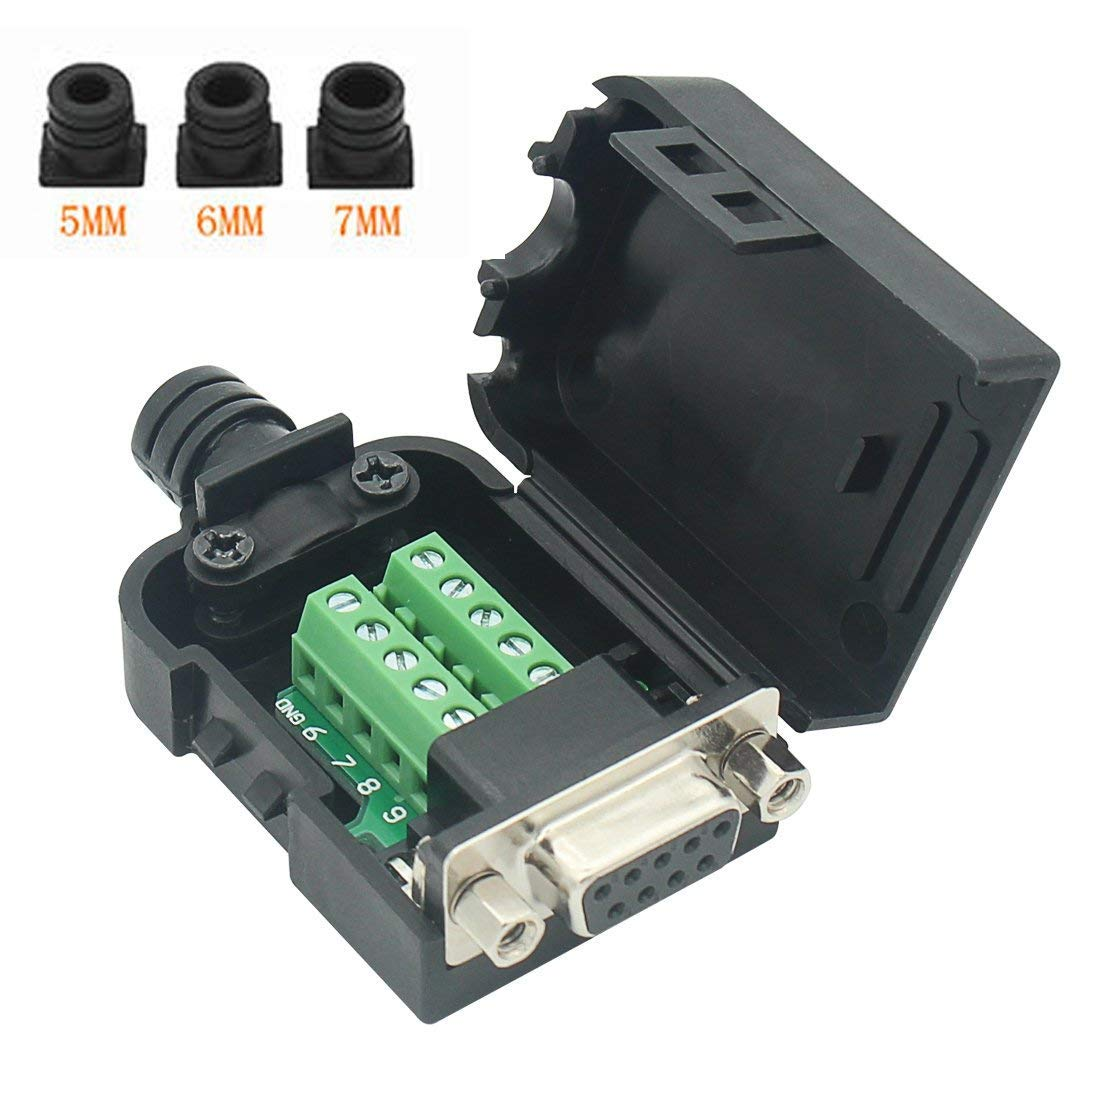 2 PCS Female Adapter Connector DB9 RS232 D-SUB Serial Adapters